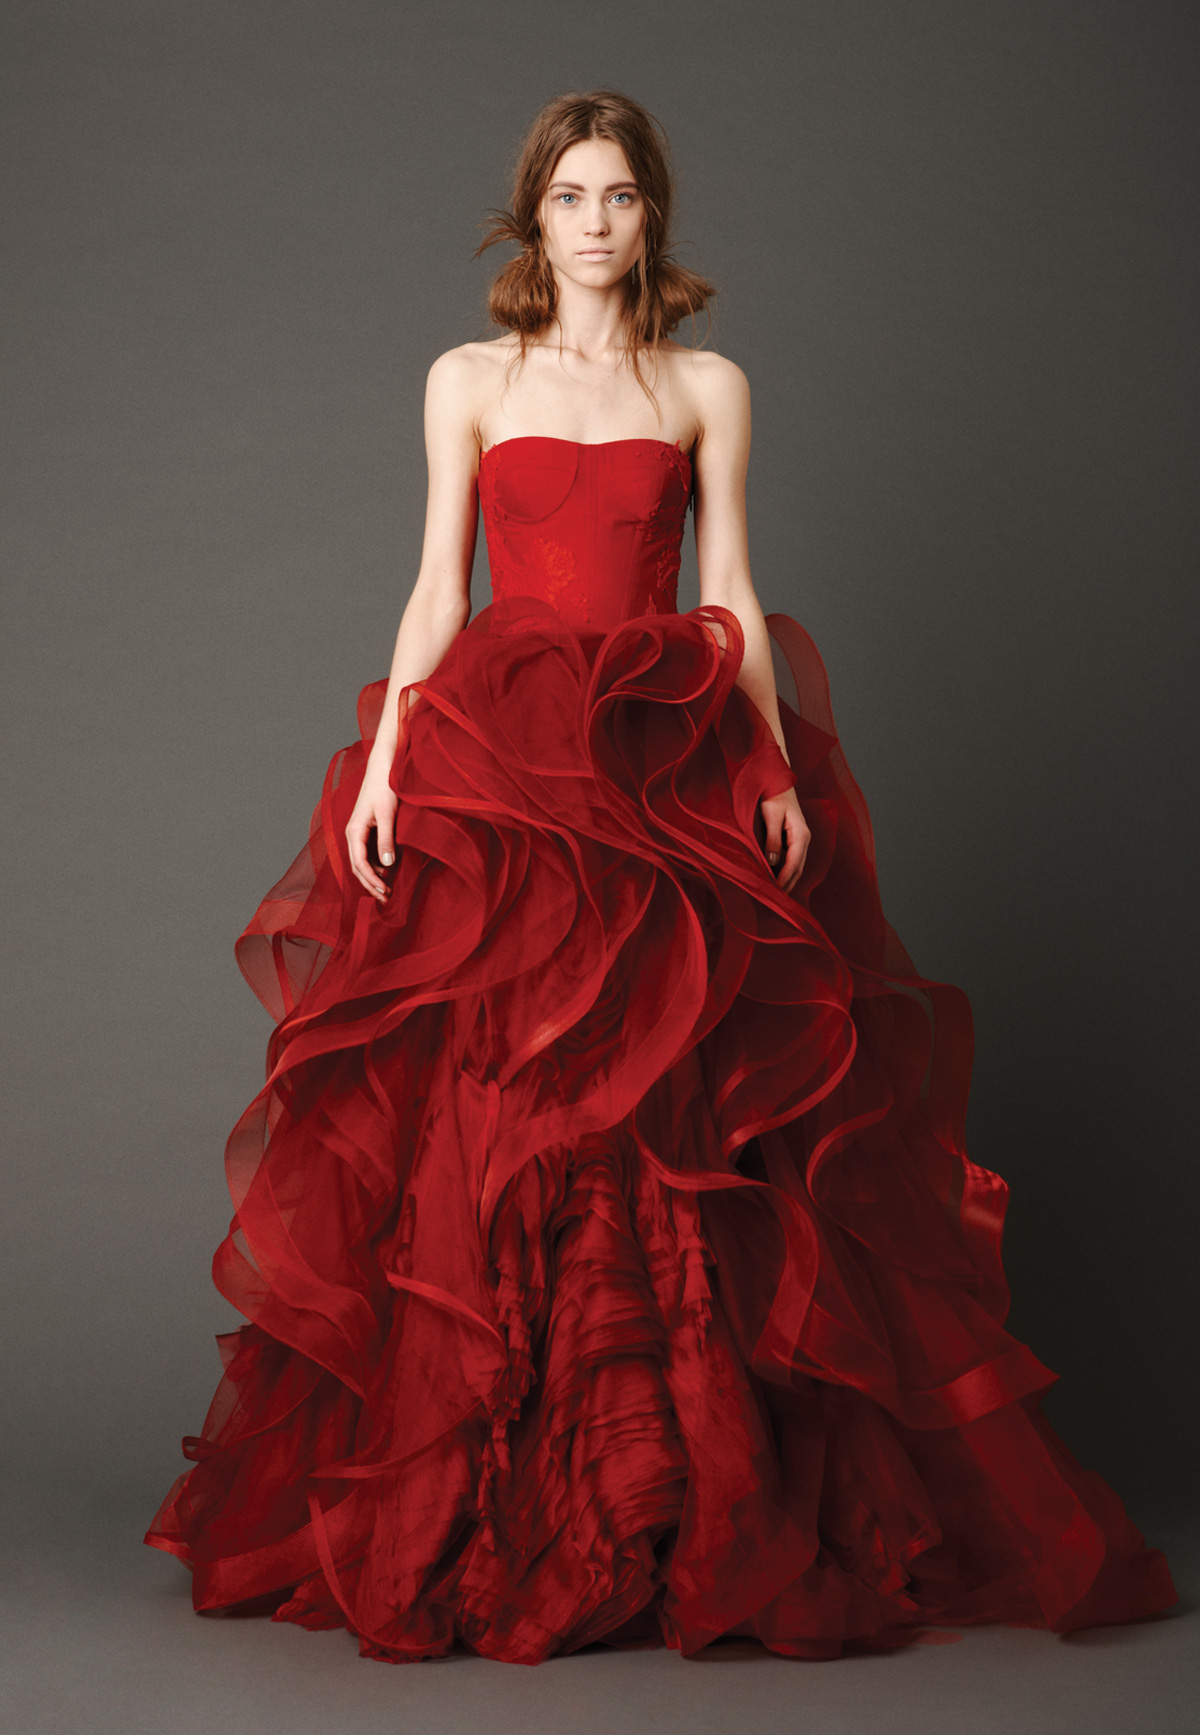 red dress to wedding red dress for wedding Trend Watch Wedding Dresses That Aren T White Shannon Gail Keeppy Red Wedding Dresses